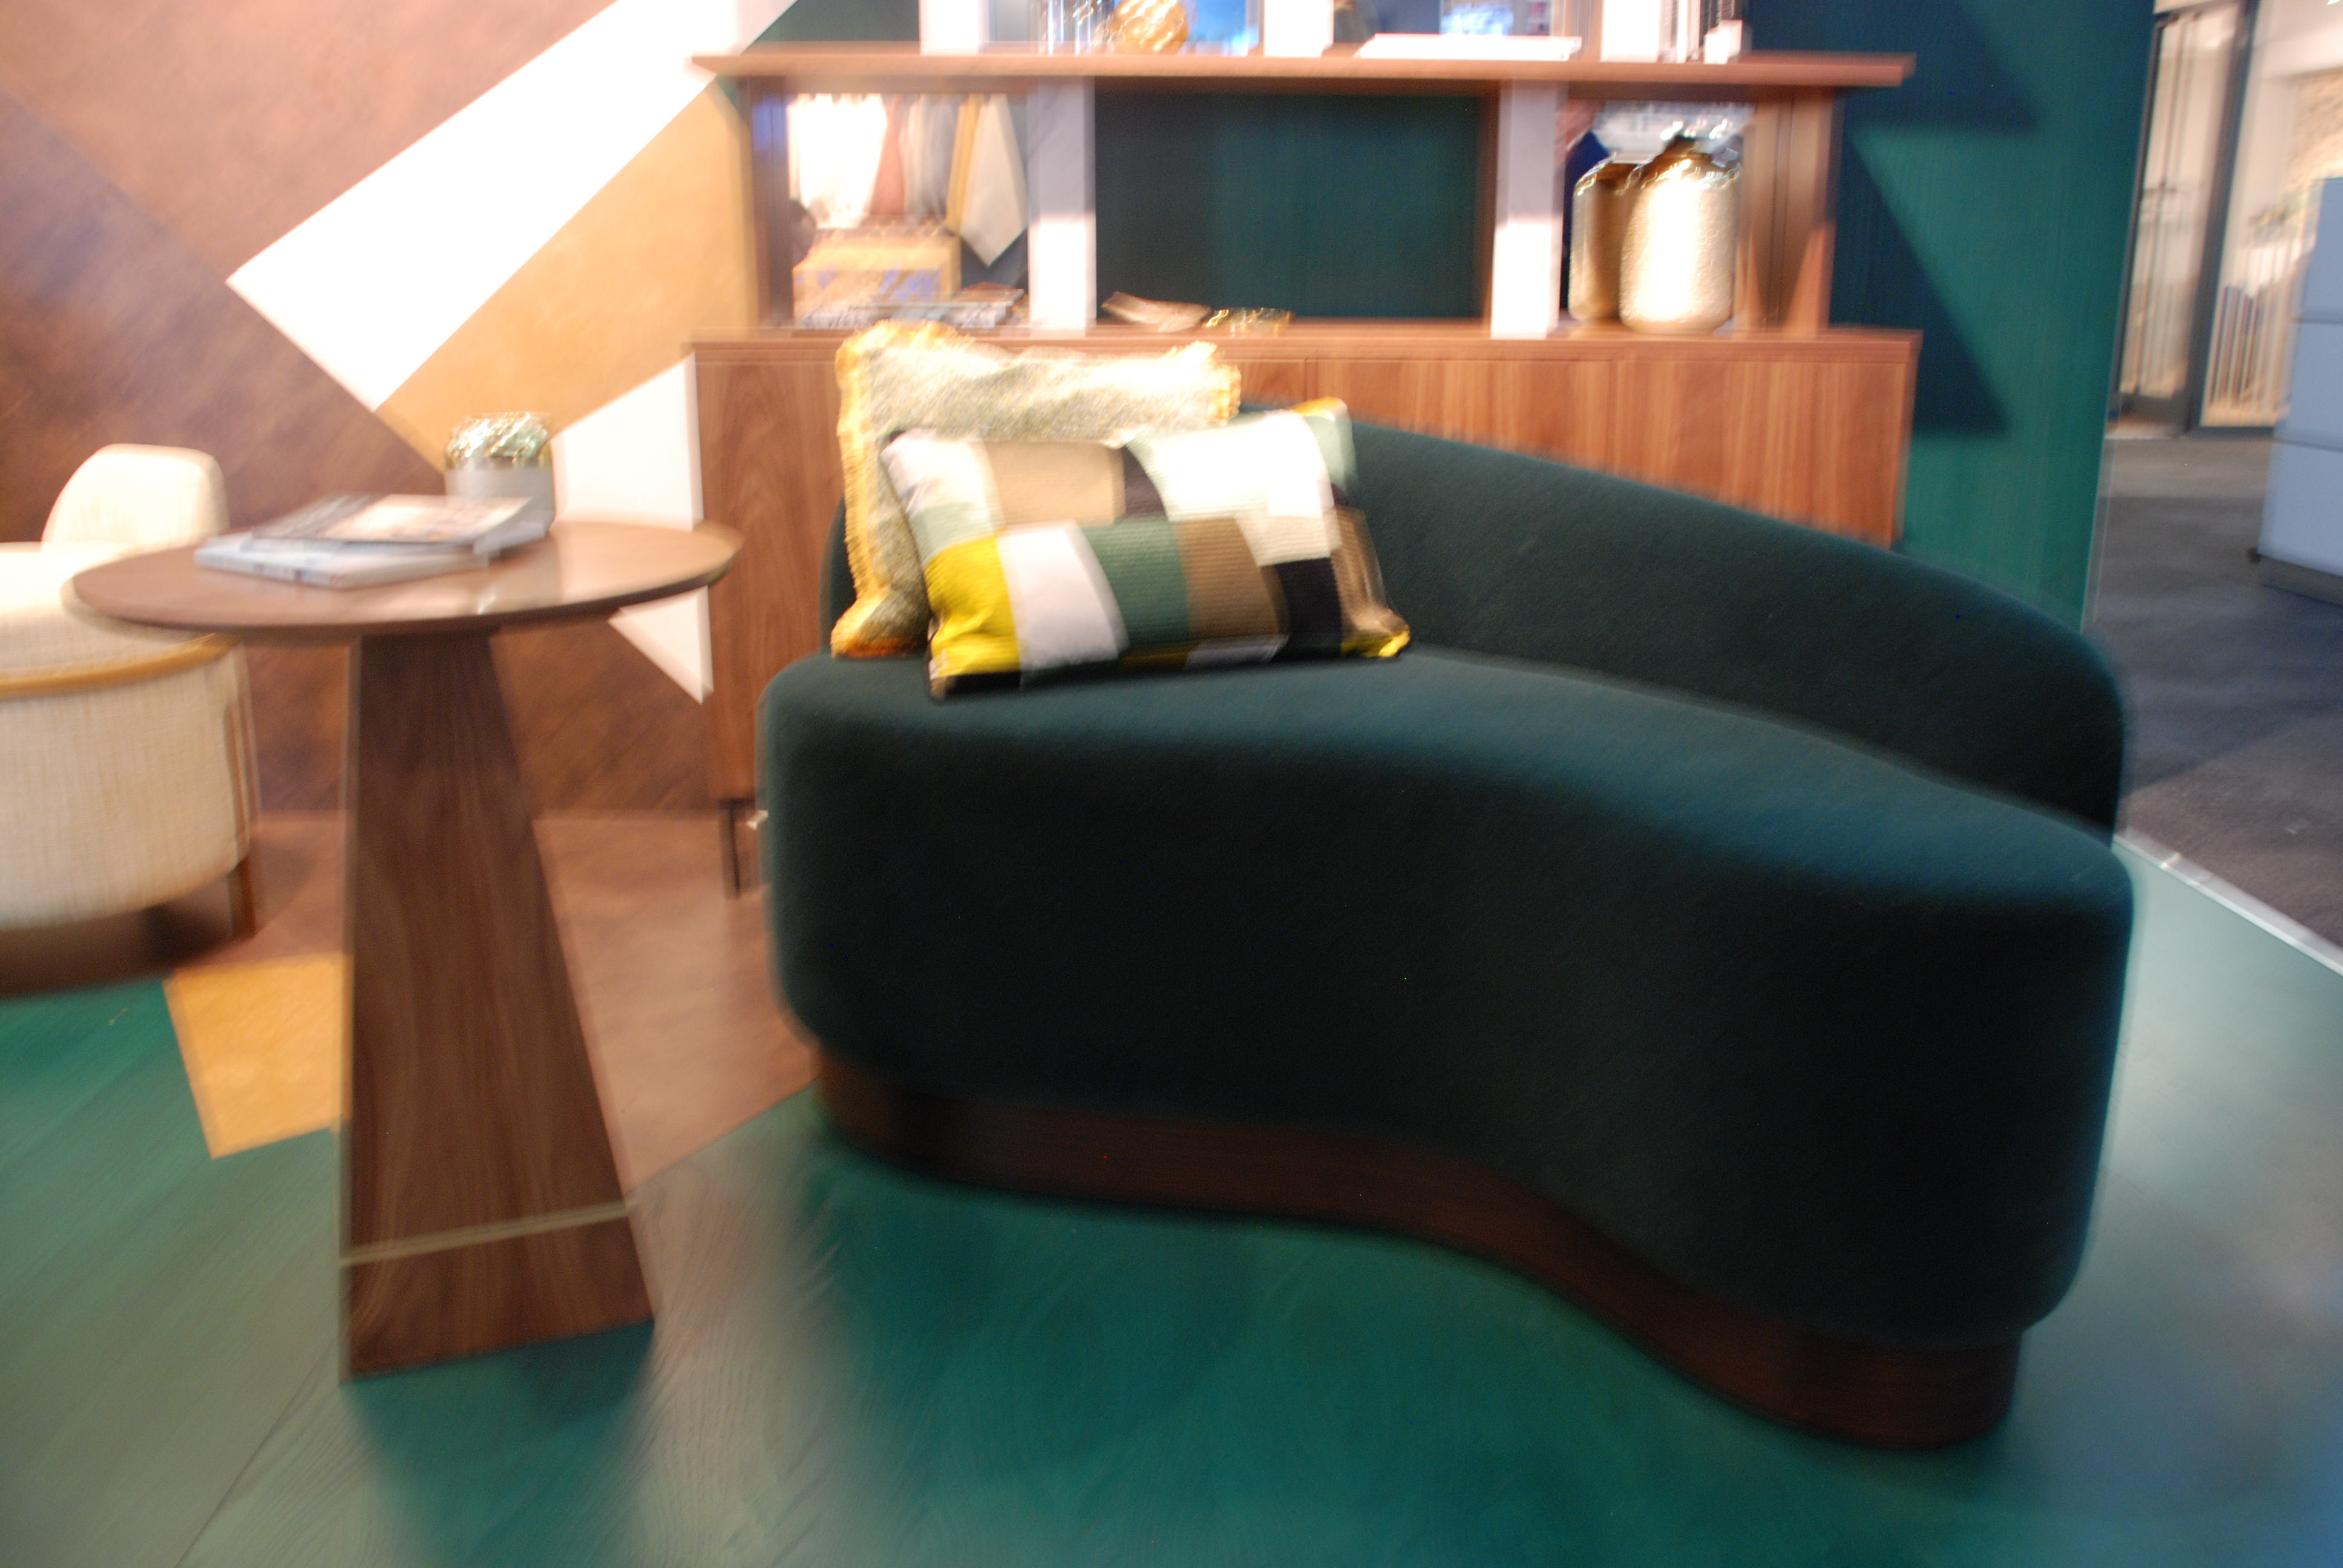 Table and Sofa